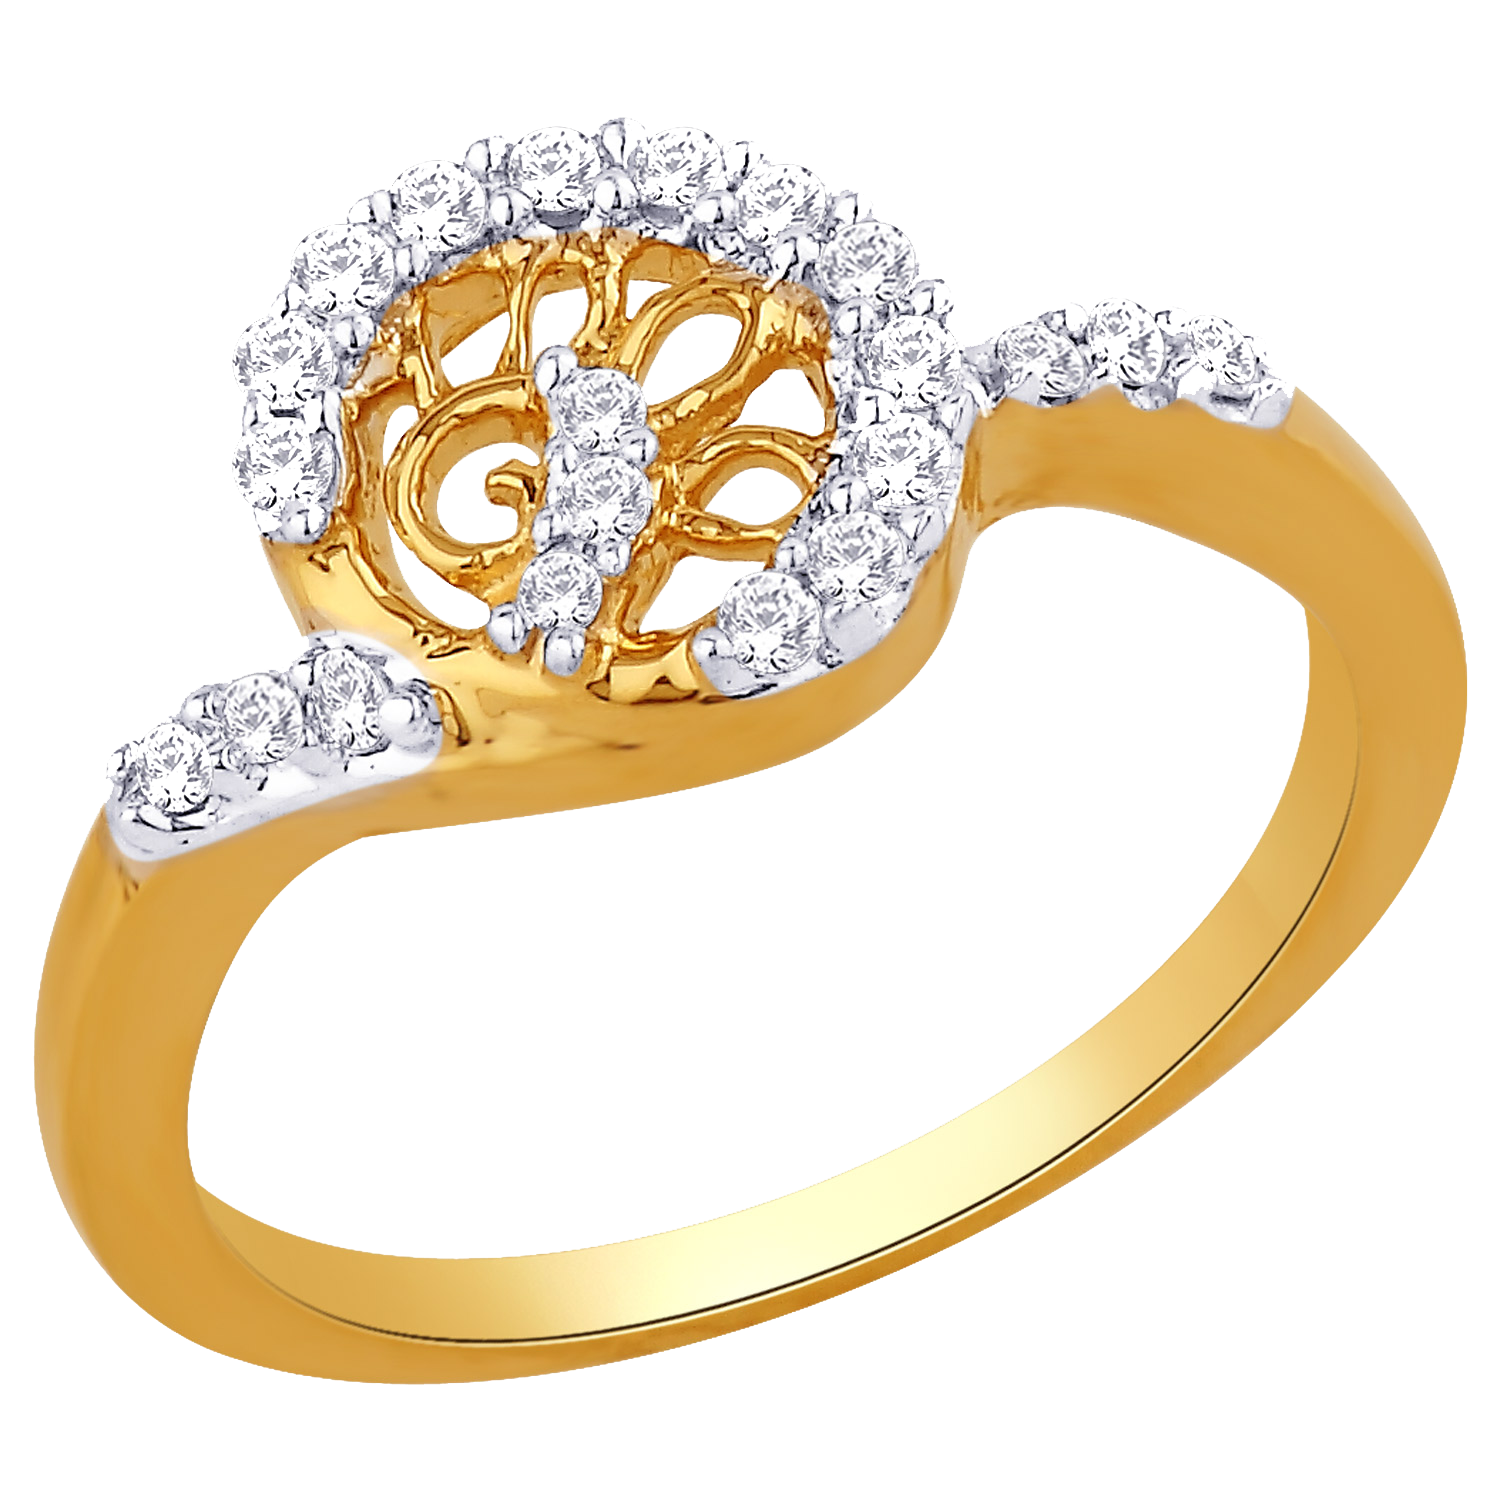 Jewelry Images PNG HD - 129384